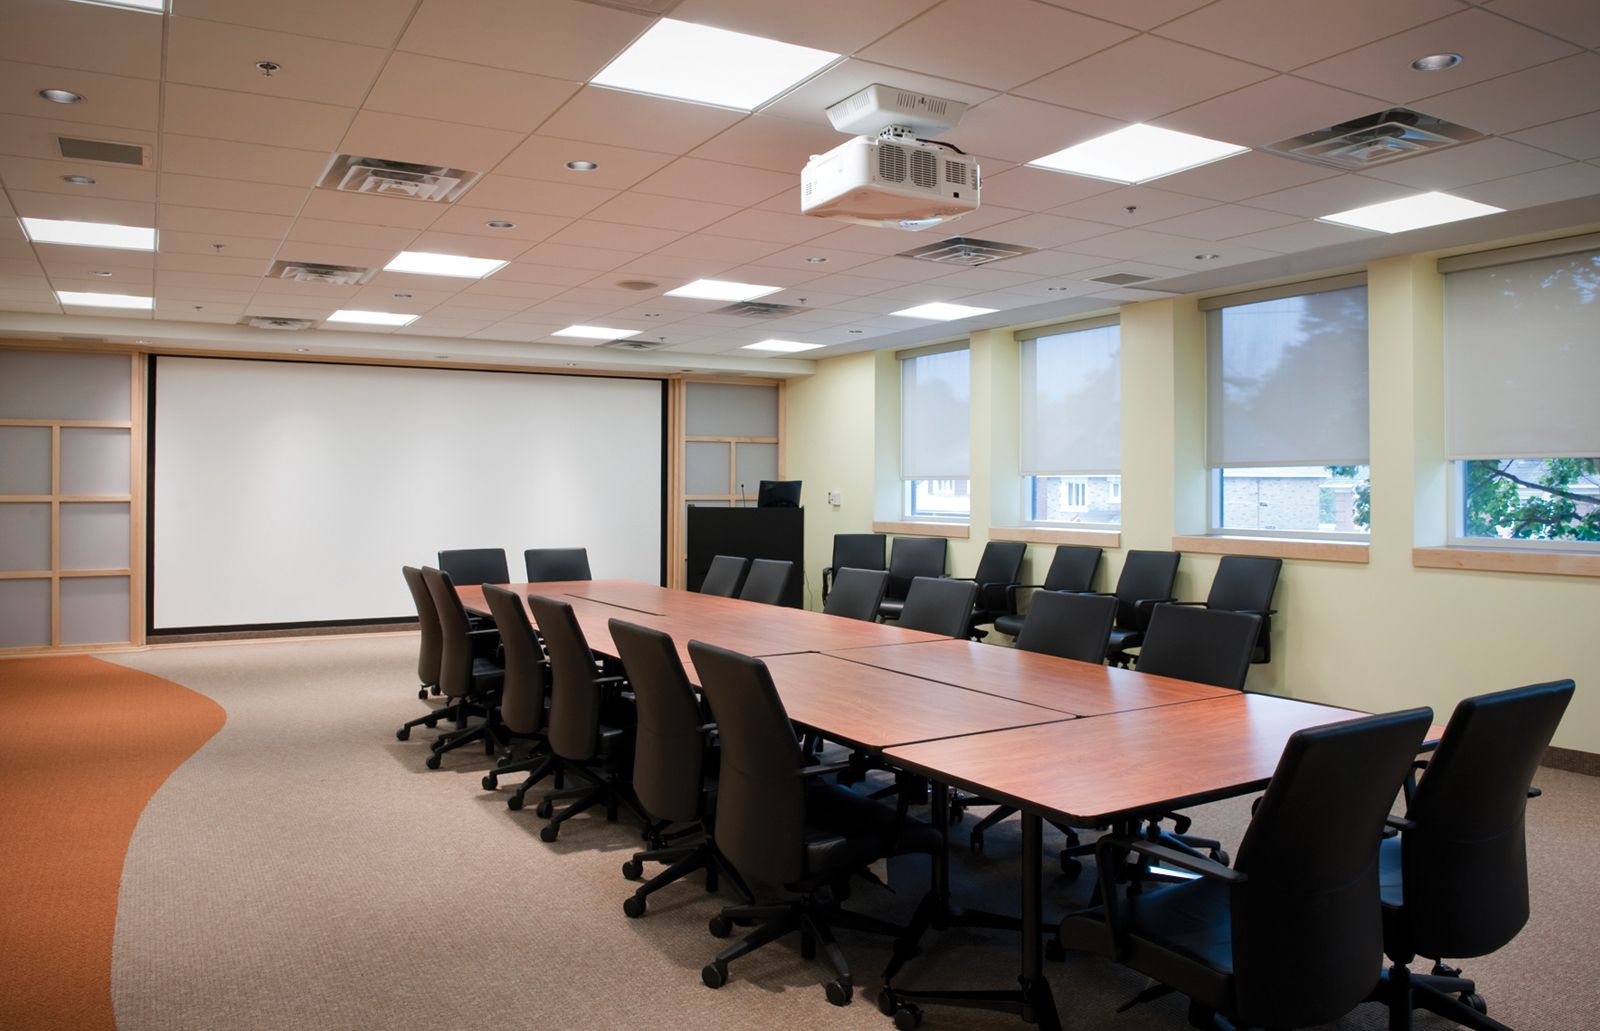 Good lighting conference rooms interior design ideas for for Conference room design ideas office conference room